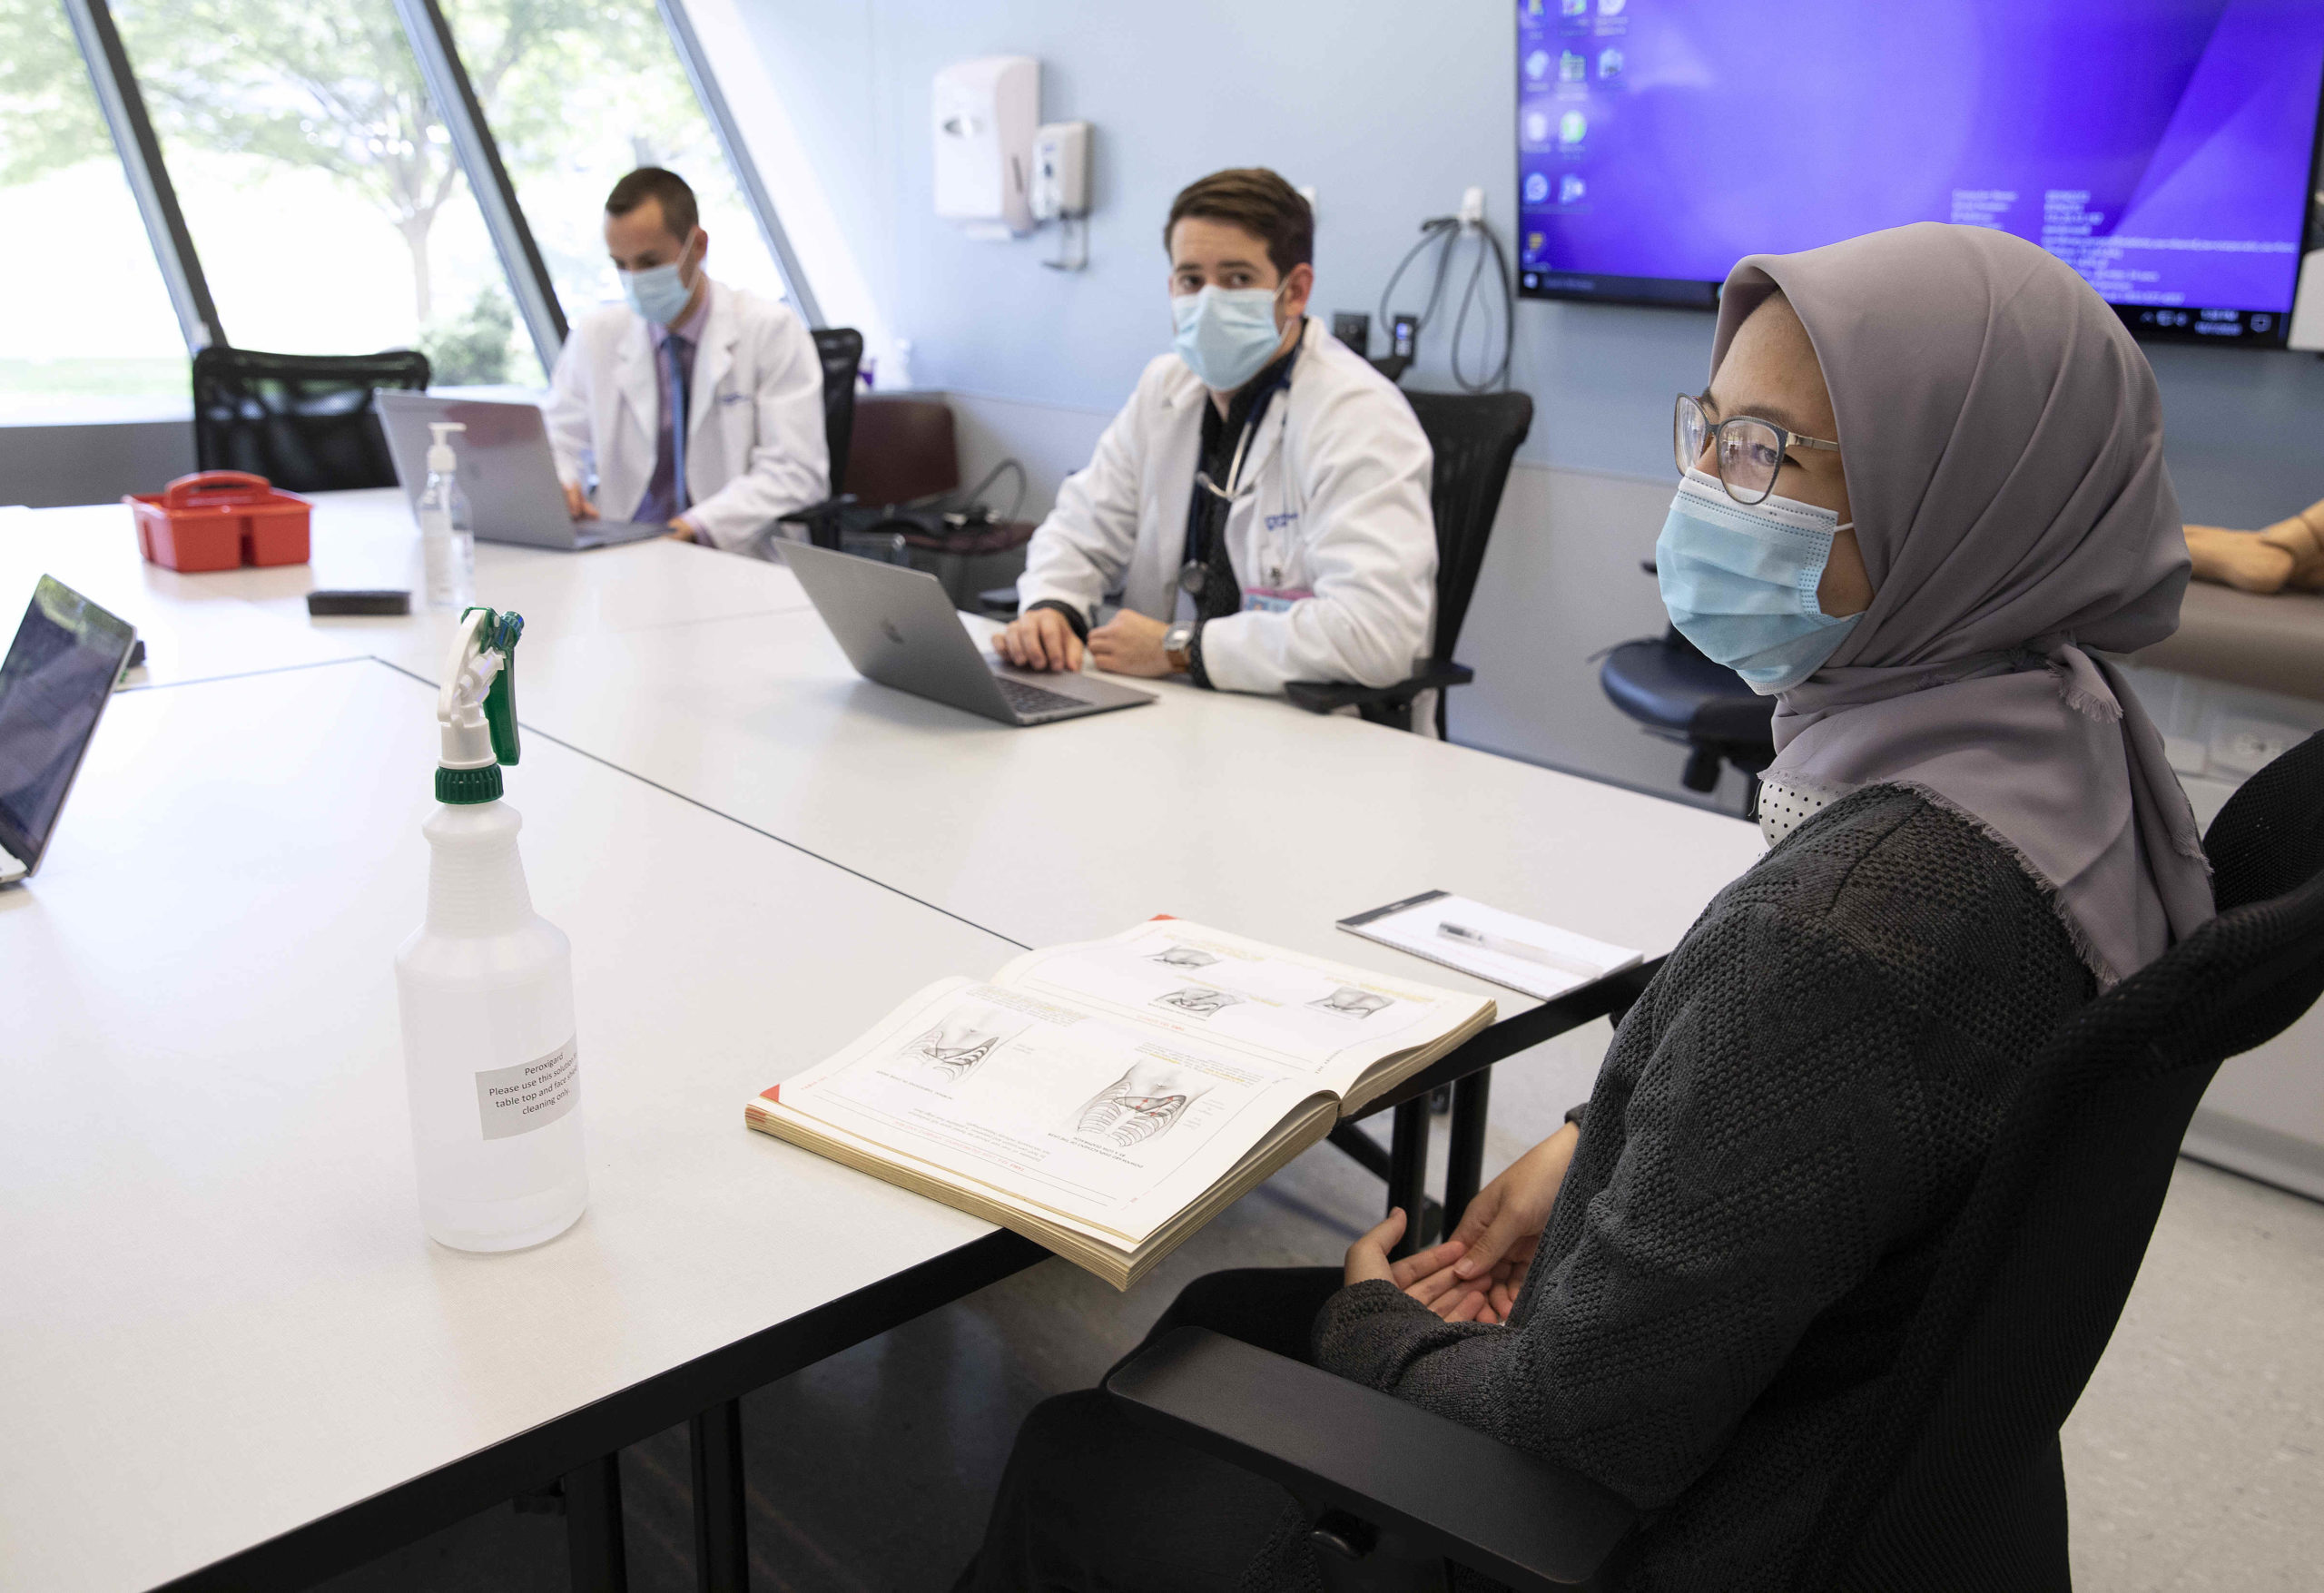 In the foreground, a female medical student wearing a surgical mask and head covering is seated at a conference table with an open textbook in front of her. In the background, two male students, also wearing surgical masks, are seated at adjoining conference tables with open laptops in front of them.